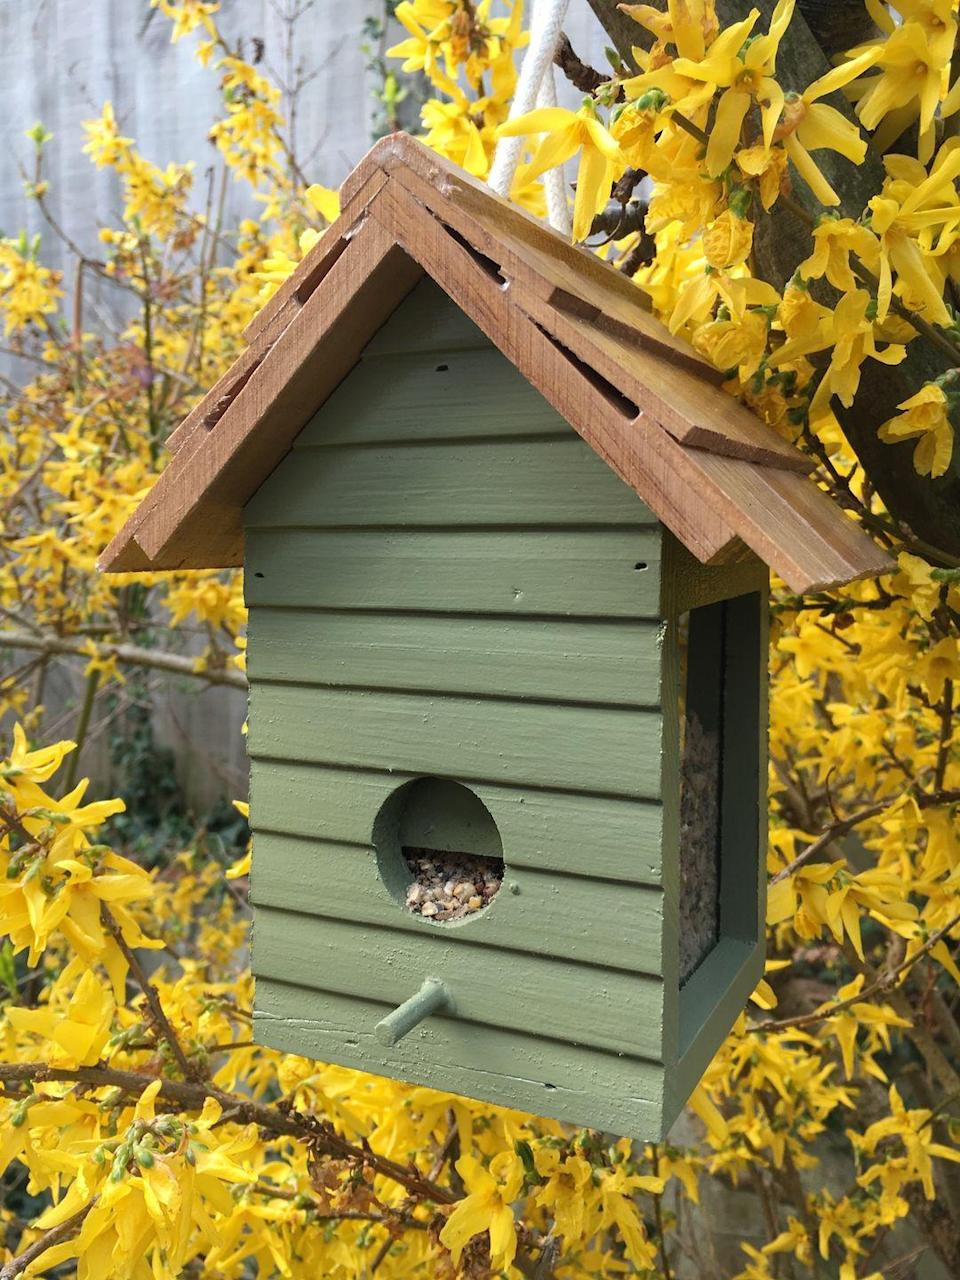 """<p>If you're looking for garden ideas for wildlife, you could install a bird feeder, bird bath or bird house. More birds attracted to your outdoor space will also mean more chances of listening to the sound of birds singing, which is great for your wellbeing. In fact, <a href=""""https://www.housebeautiful.com/uk/garden/a27452863/kate-humble-sounds-of-spring-campaign/"""" rel=""""nofollow noopener"""" target=""""_blank"""" data-ylk=""""slk:research shows that listening to the sound of birds"""" class=""""link rapid-noclick-resp"""">research shows that listening to the sound of birds</a> can help lower stress and fatigue, as well as helping to combat <a href=""""https://www.housebeautiful.com/uk/garden/plants/a21744447/flowers-to-boost-mood-mind-rhs-garden/"""" rel=""""nofollow noopener"""" target=""""_blank"""" data-ylk=""""slk:anxiety"""" class=""""link rapid-noclick-resp"""">anxiety</a>.</p><p>You could buy one (shop a selection at the <a href=""""https://go.redirectingat.com?id=127X1599956&url=https%3A%2F%2Fshopping.rspb.org.uk%2Fbird-feeders%2F&sref=https%3A%2F%2Fwww.housebeautiful.com%2Fuk%2Fgarden%2Fdesigns%2Fg28%2Fgarden-ideas-on-a-budget%2F"""" rel=""""nofollow noopener"""" target=""""_blank"""" data-ylk=""""slk:RSPB"""" class=""""link rapid-noclick-resp"""">RSPB</a>) or, if you're looking for a cheaper way, wash out old tin cans (from soup and baked beans), then paint, fill with bird seed, and hang in the garden for your own homemade bird feeder.</p><p><strong>Pictured: </strong>Bird feeder in Moorland Green Wood Paint, <a href=""""https://thorndown.co.uk/product/moorland-green-wood-paint/"""" rel=""""nofollow noopener"""" target=""""_blank"""" data-ylk=""""slk:Thorndown Paints"""" class=""""link rapid-noclick-resp"""">Thorndown Paints</a></p>"""